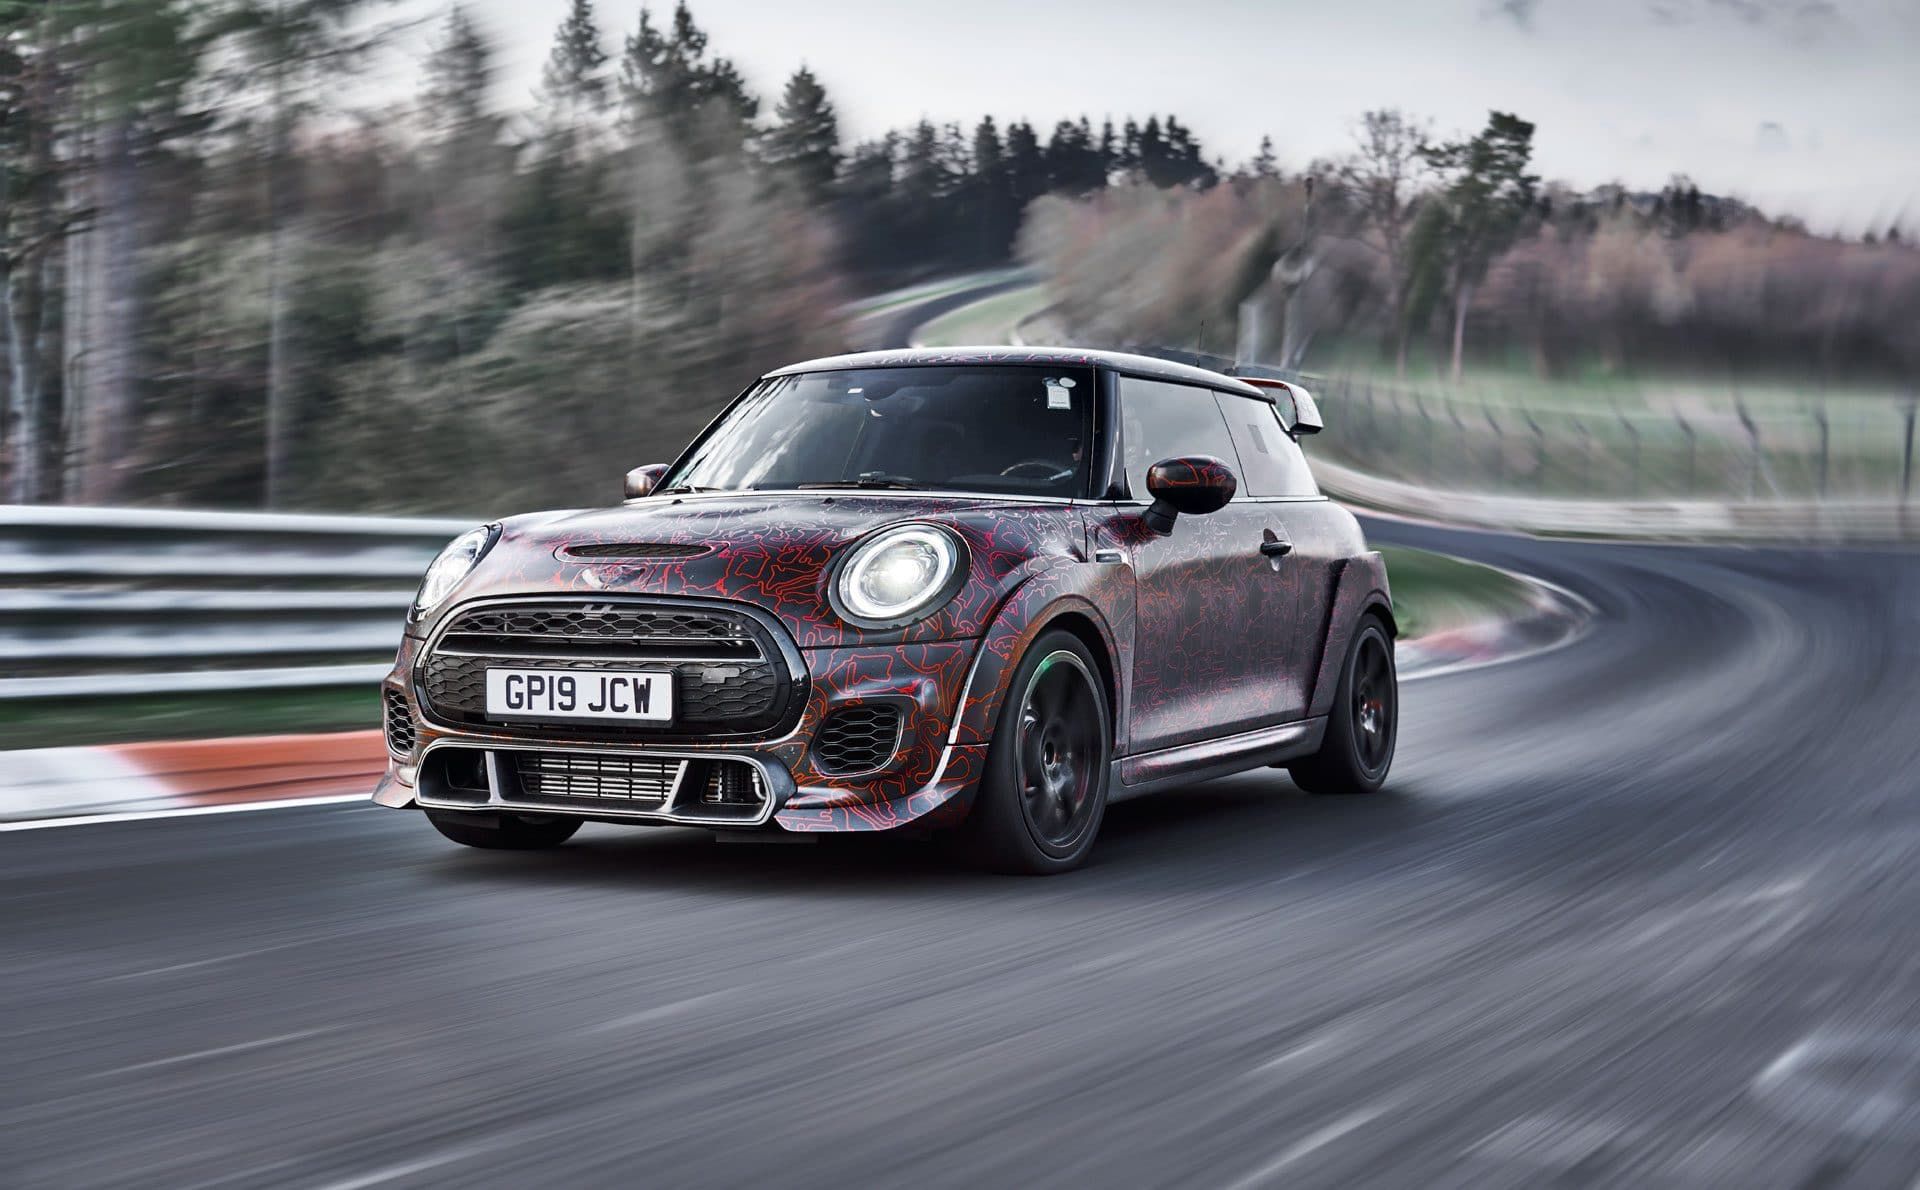 Nürburgring - Mini Cooper JCW GP